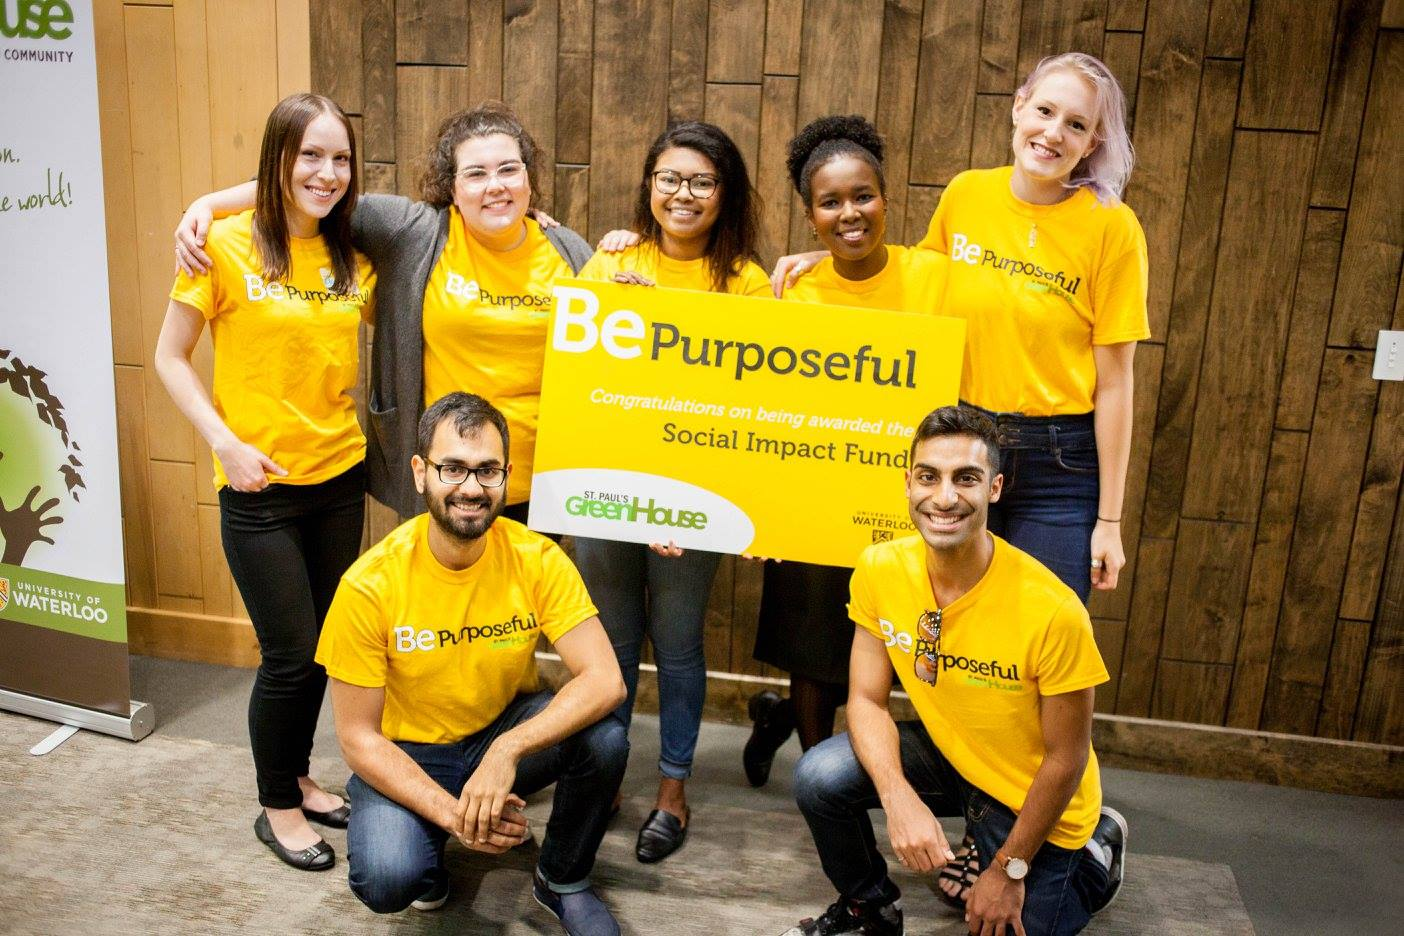 Social Impact Fund recipients hold up a banner